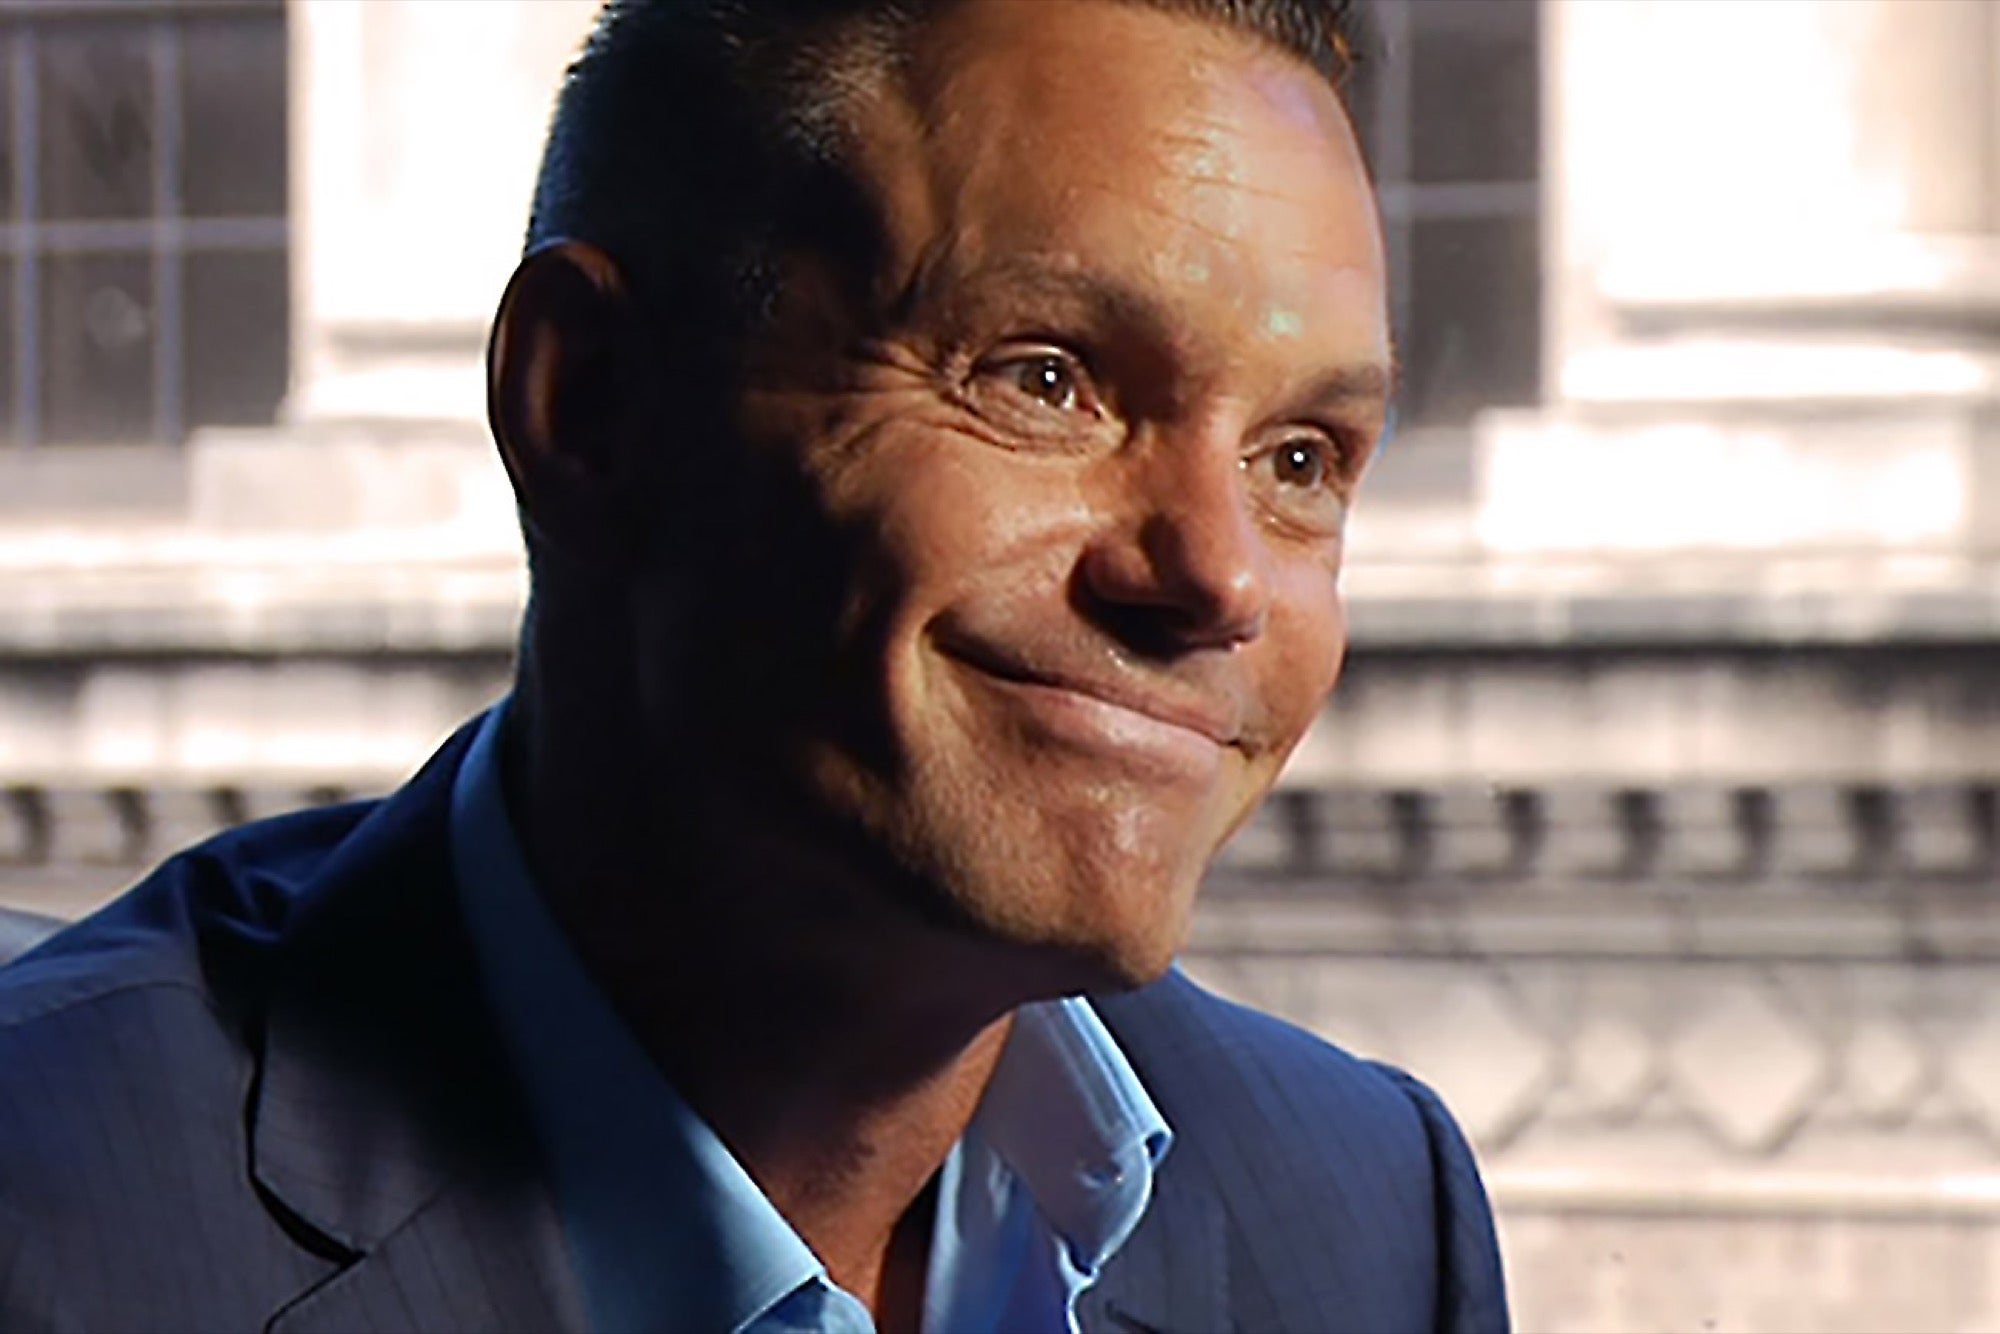 Kevin harrington entrepreneur